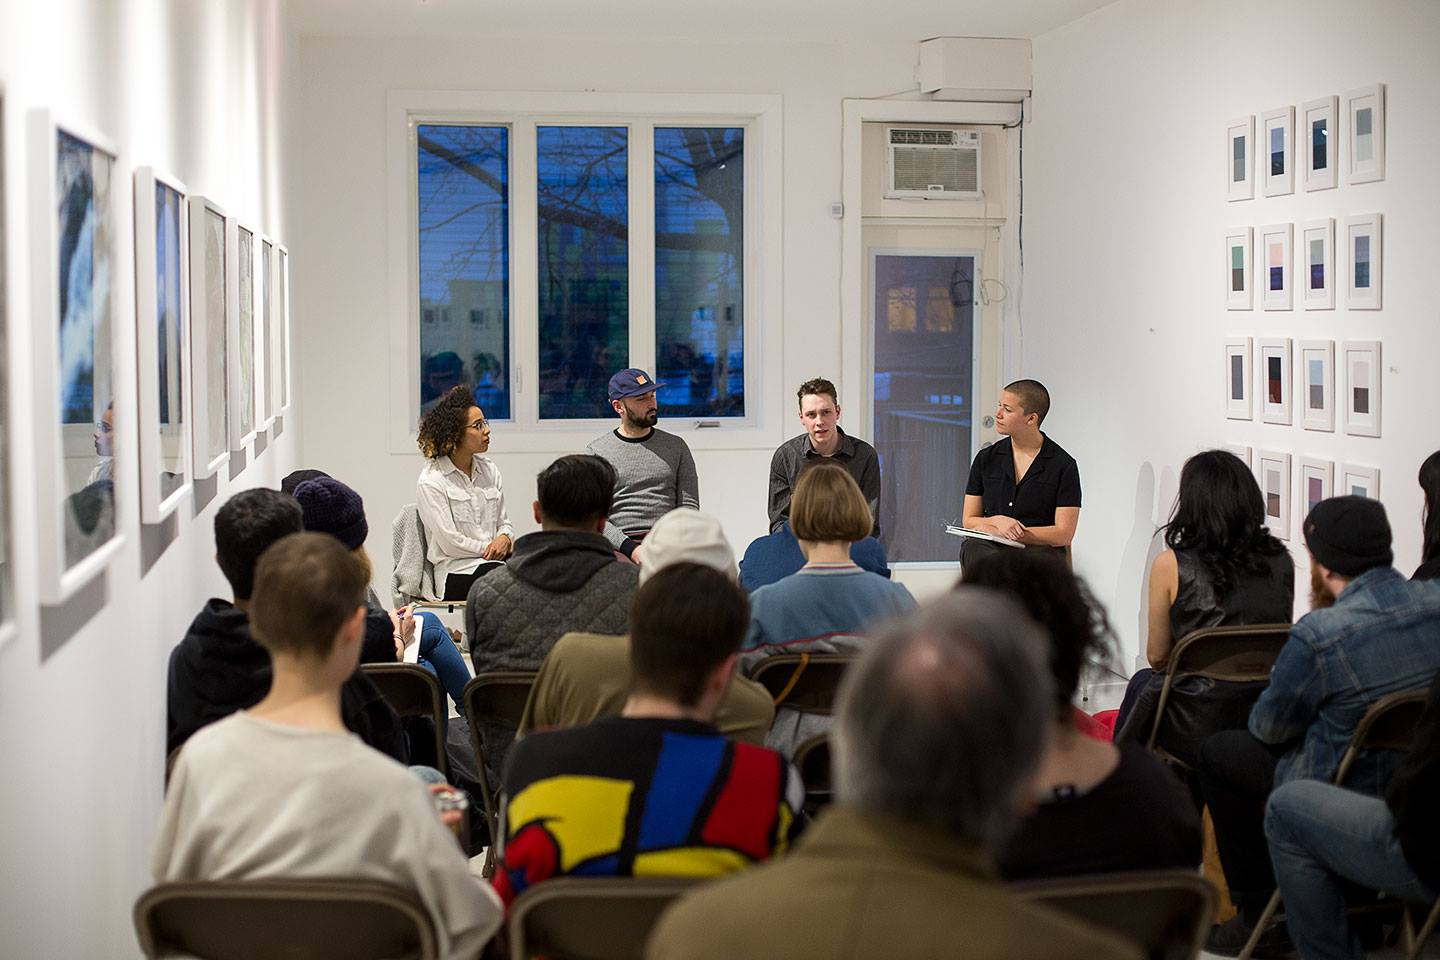 Build Yourself a Home: A Panel Discussion hosted by Portrait.co